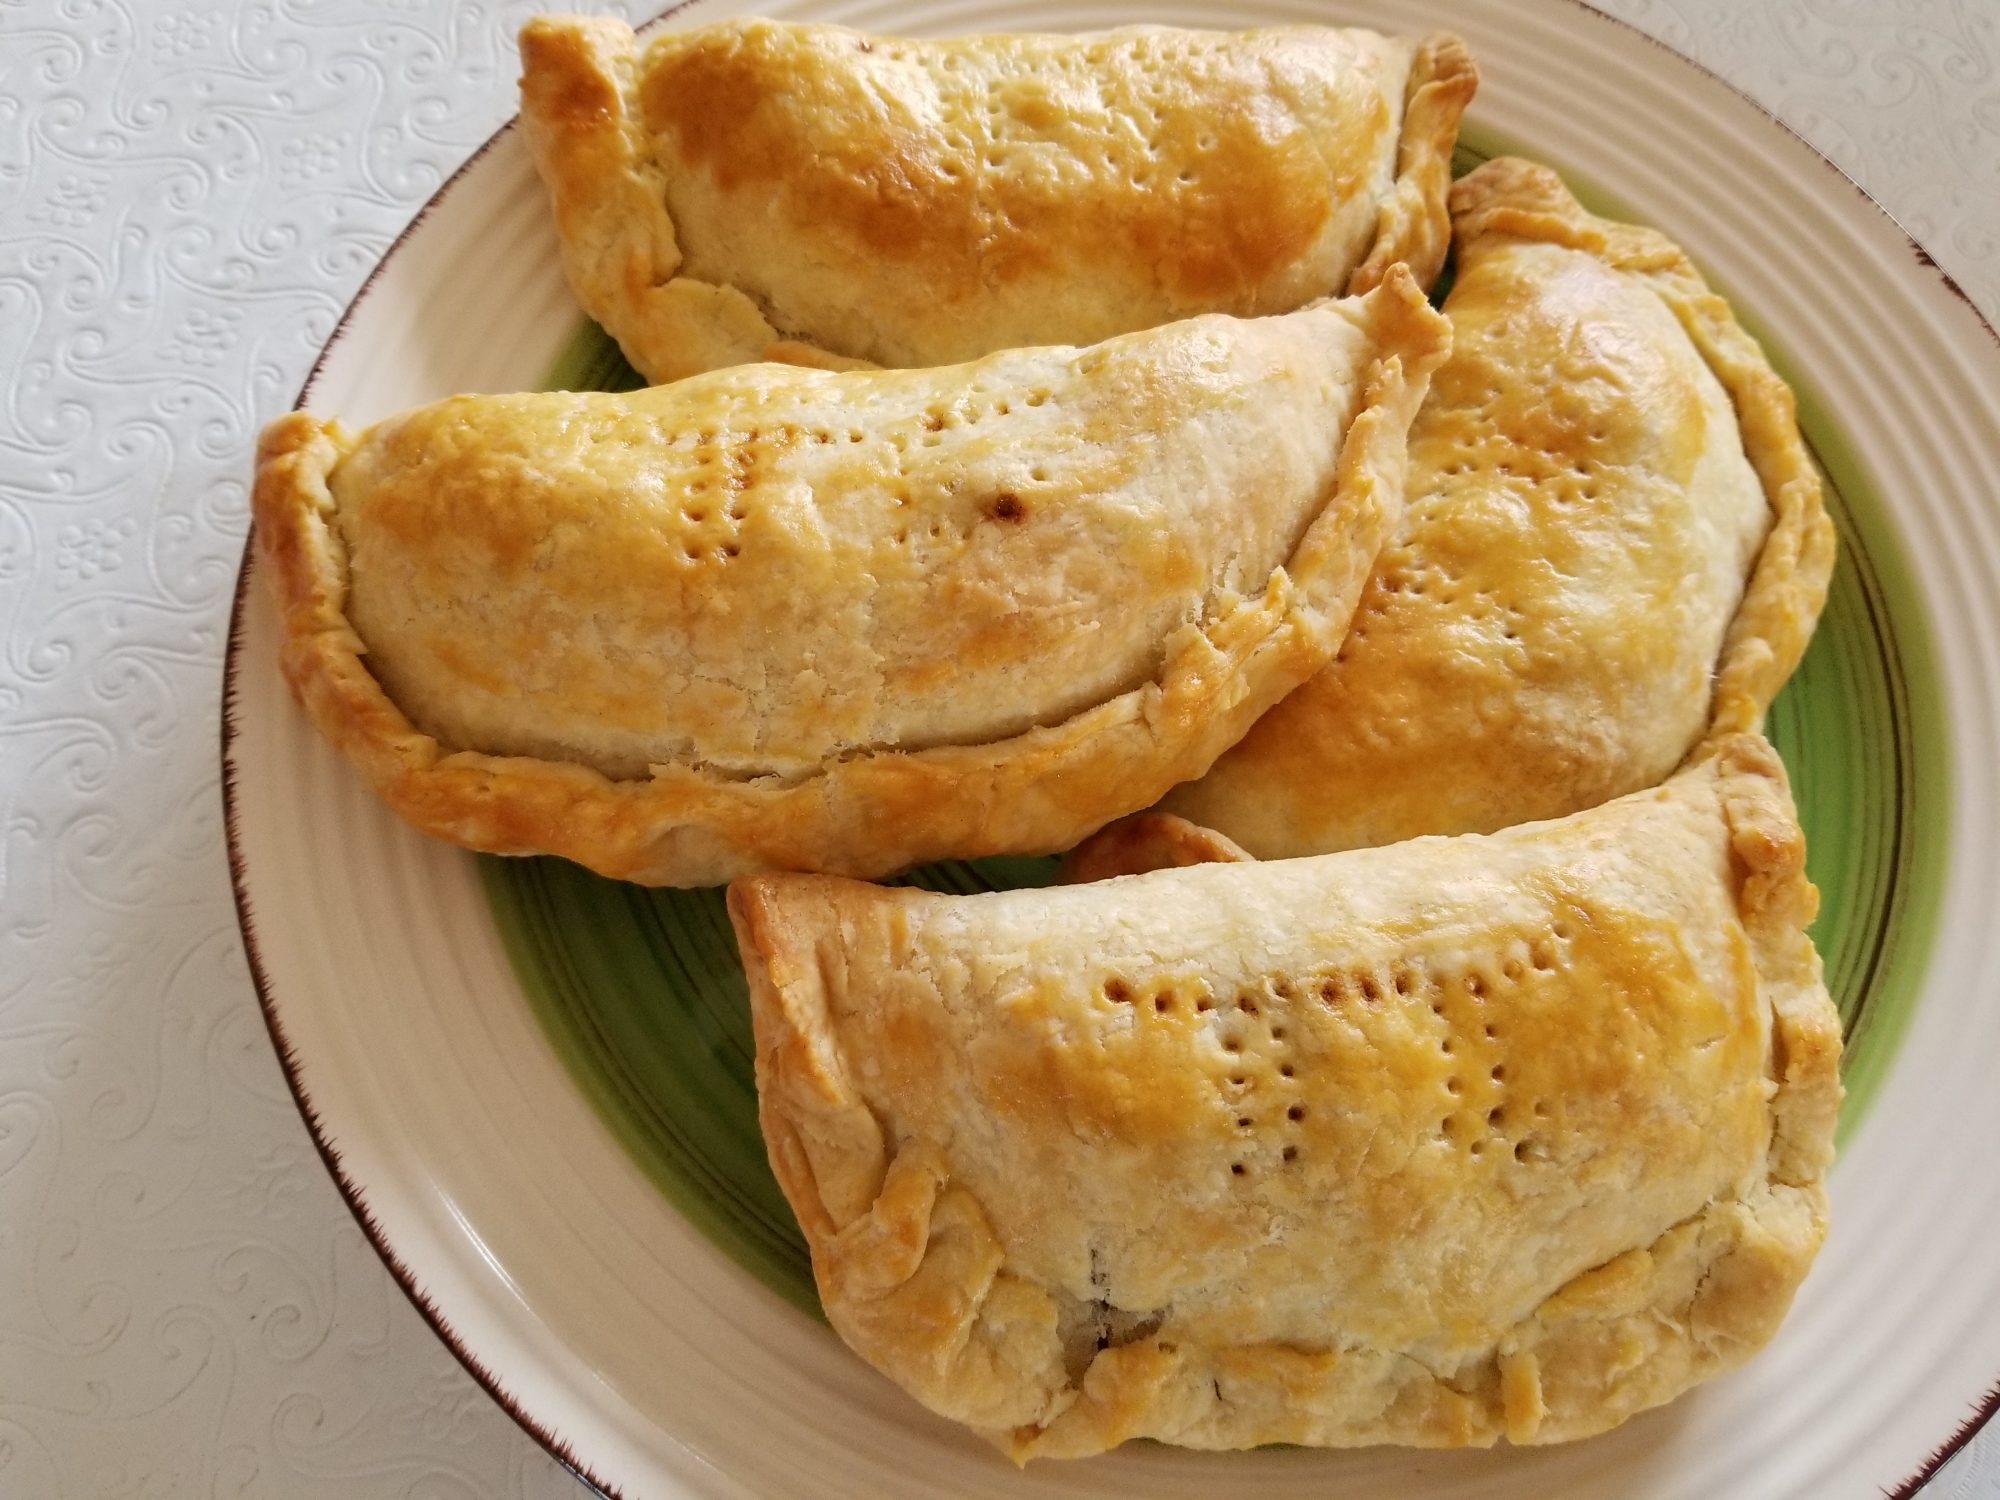 Apple Hand Pies on a green and white plate